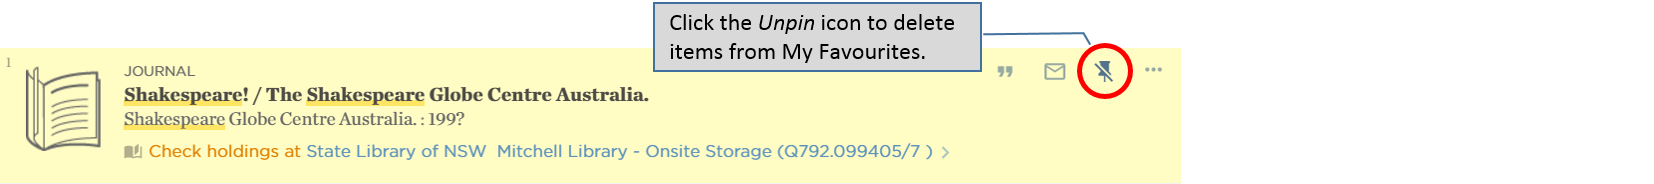 Catalogue – deleting items from My Favourites – unpin items